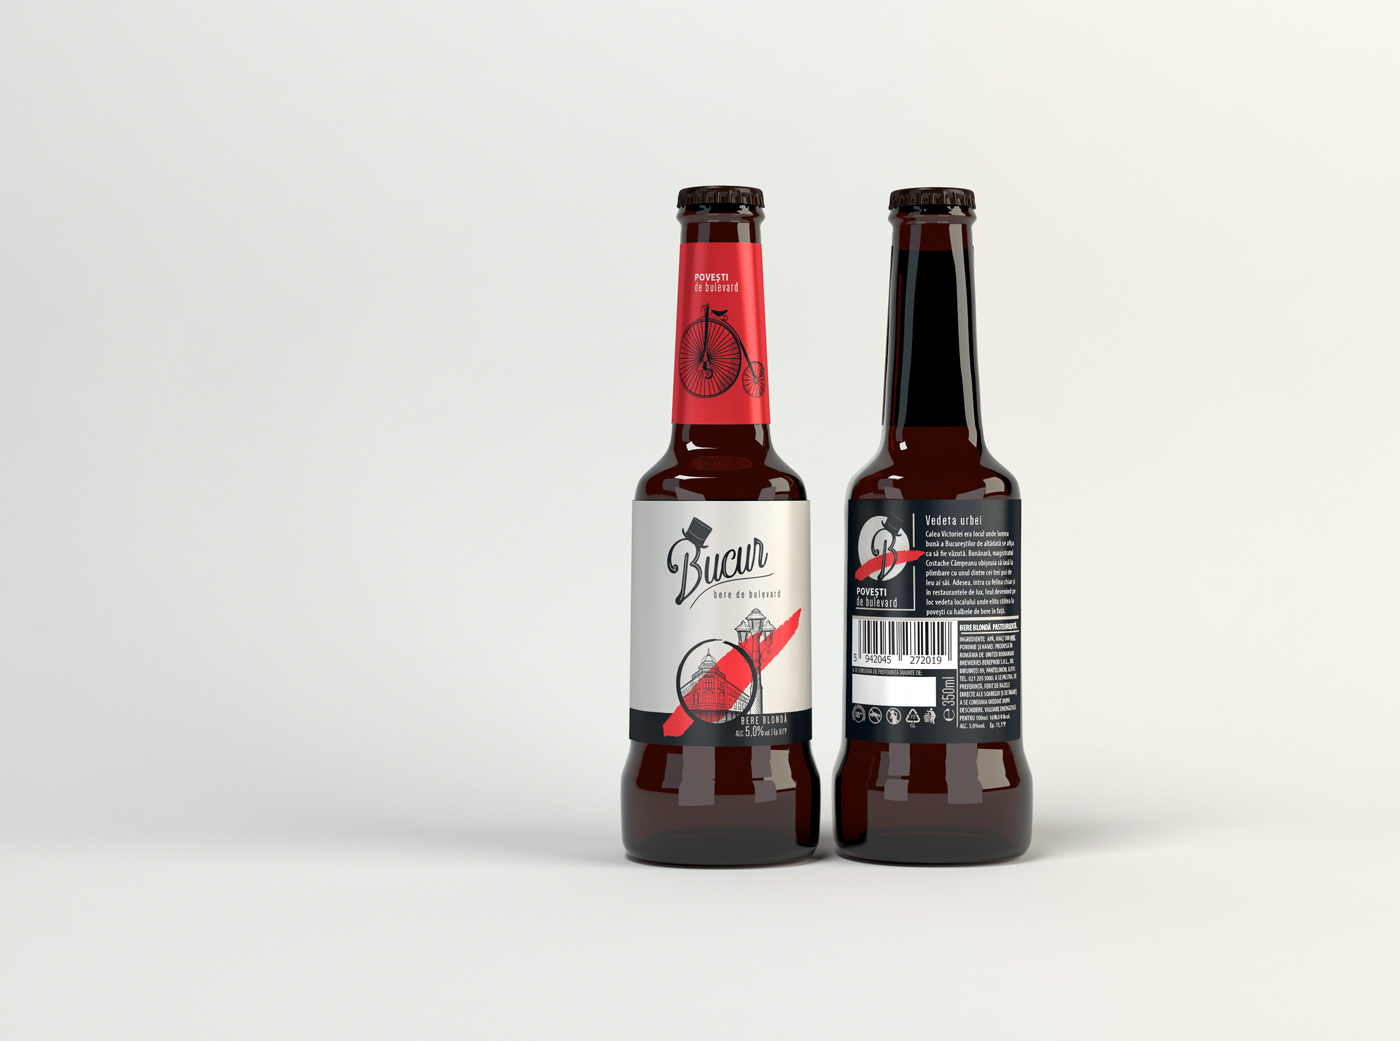 CreativeByDefinition Crafts Packaging Design for the New Beer Brand Bucur